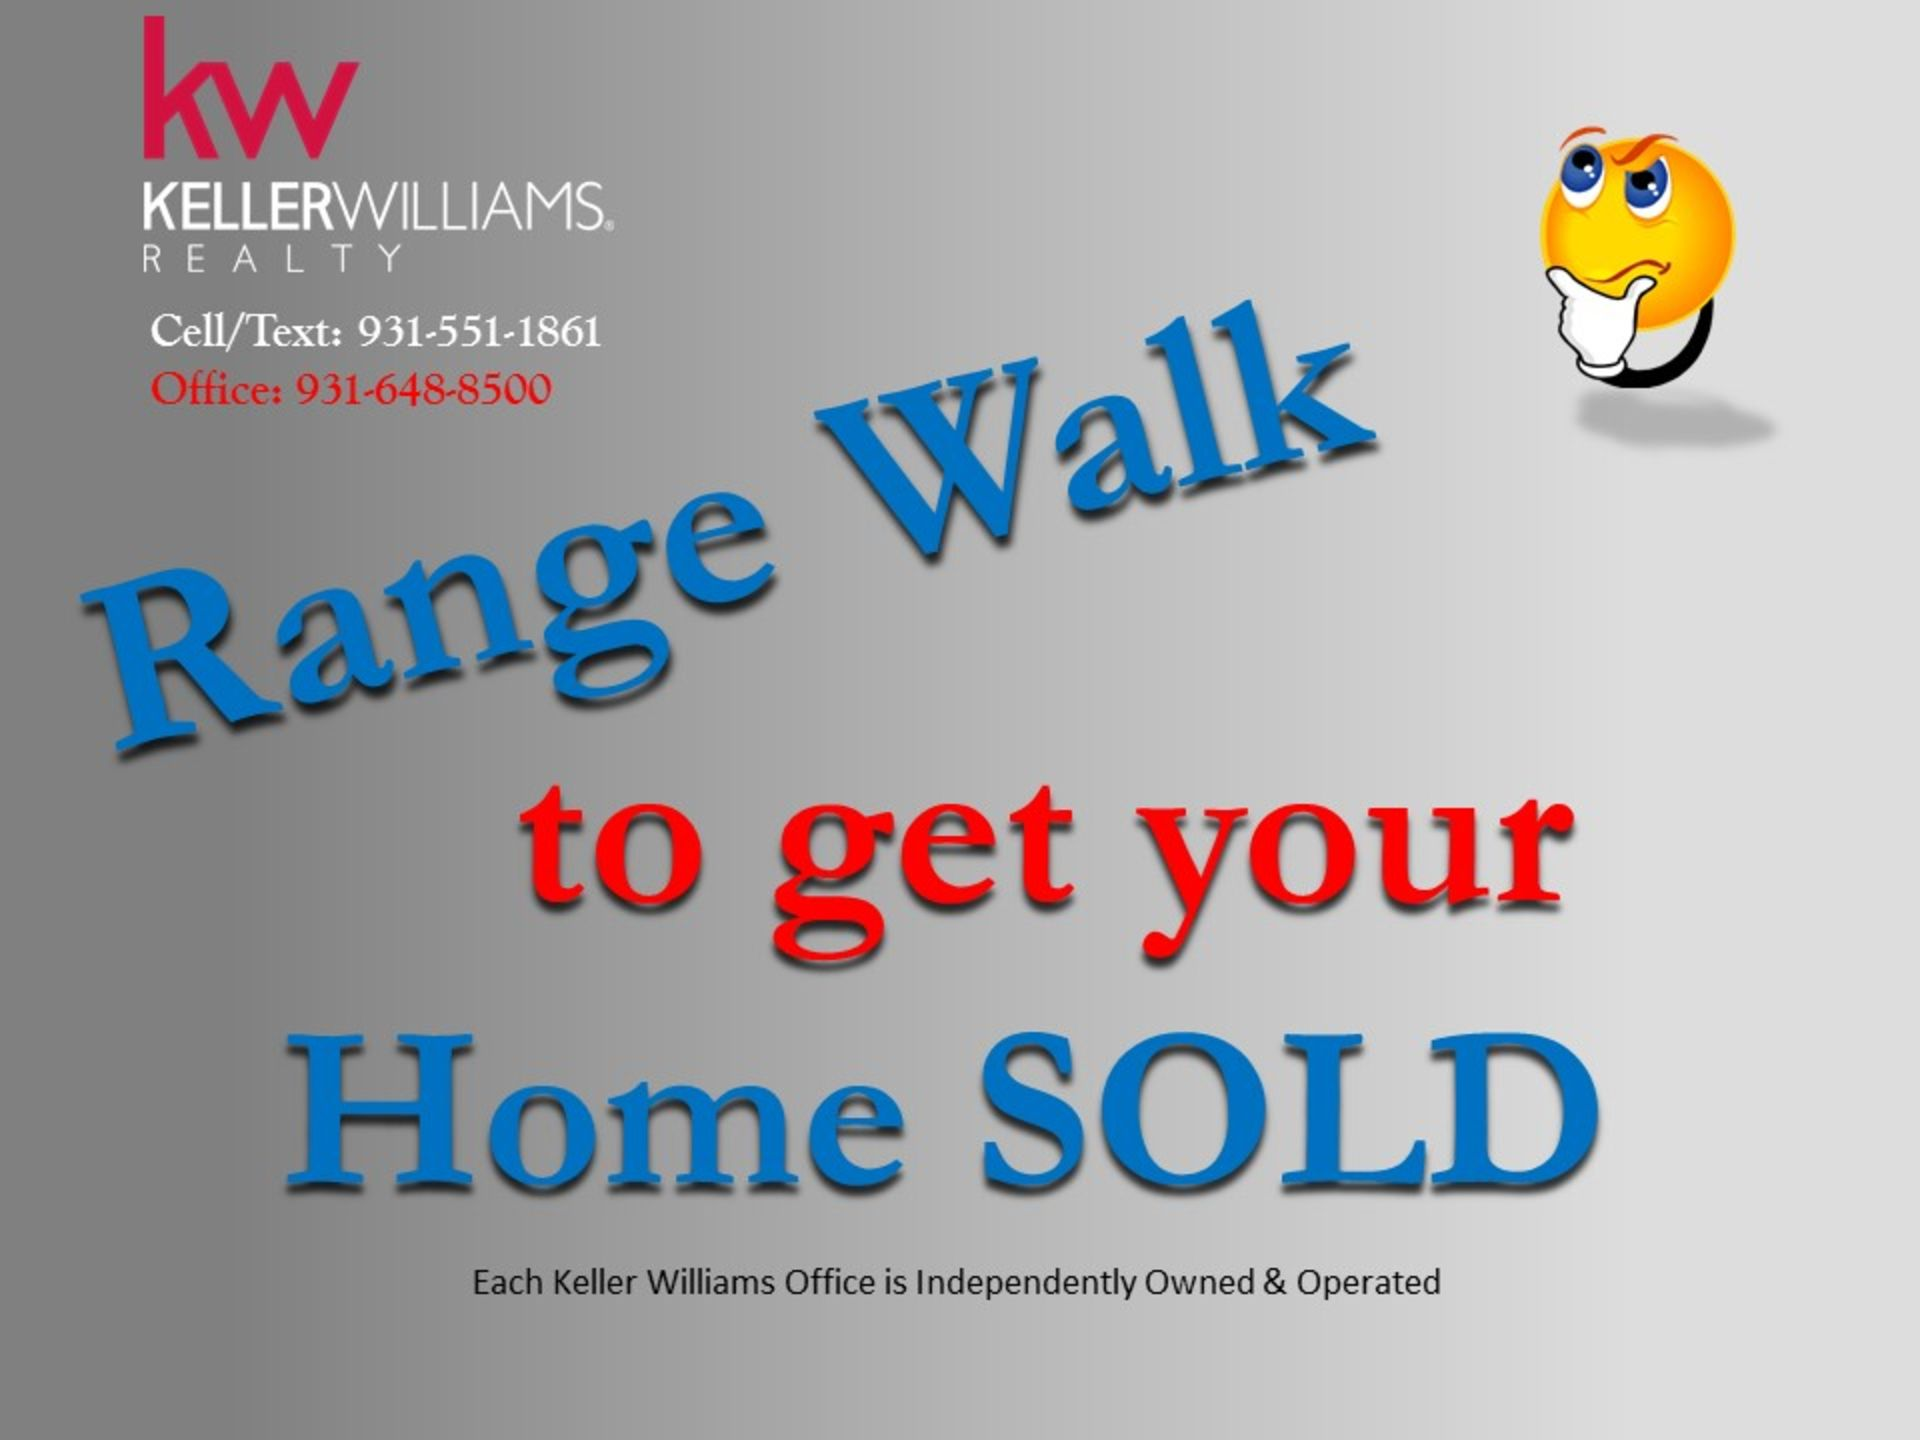 Range Walk to get Your Home Sold